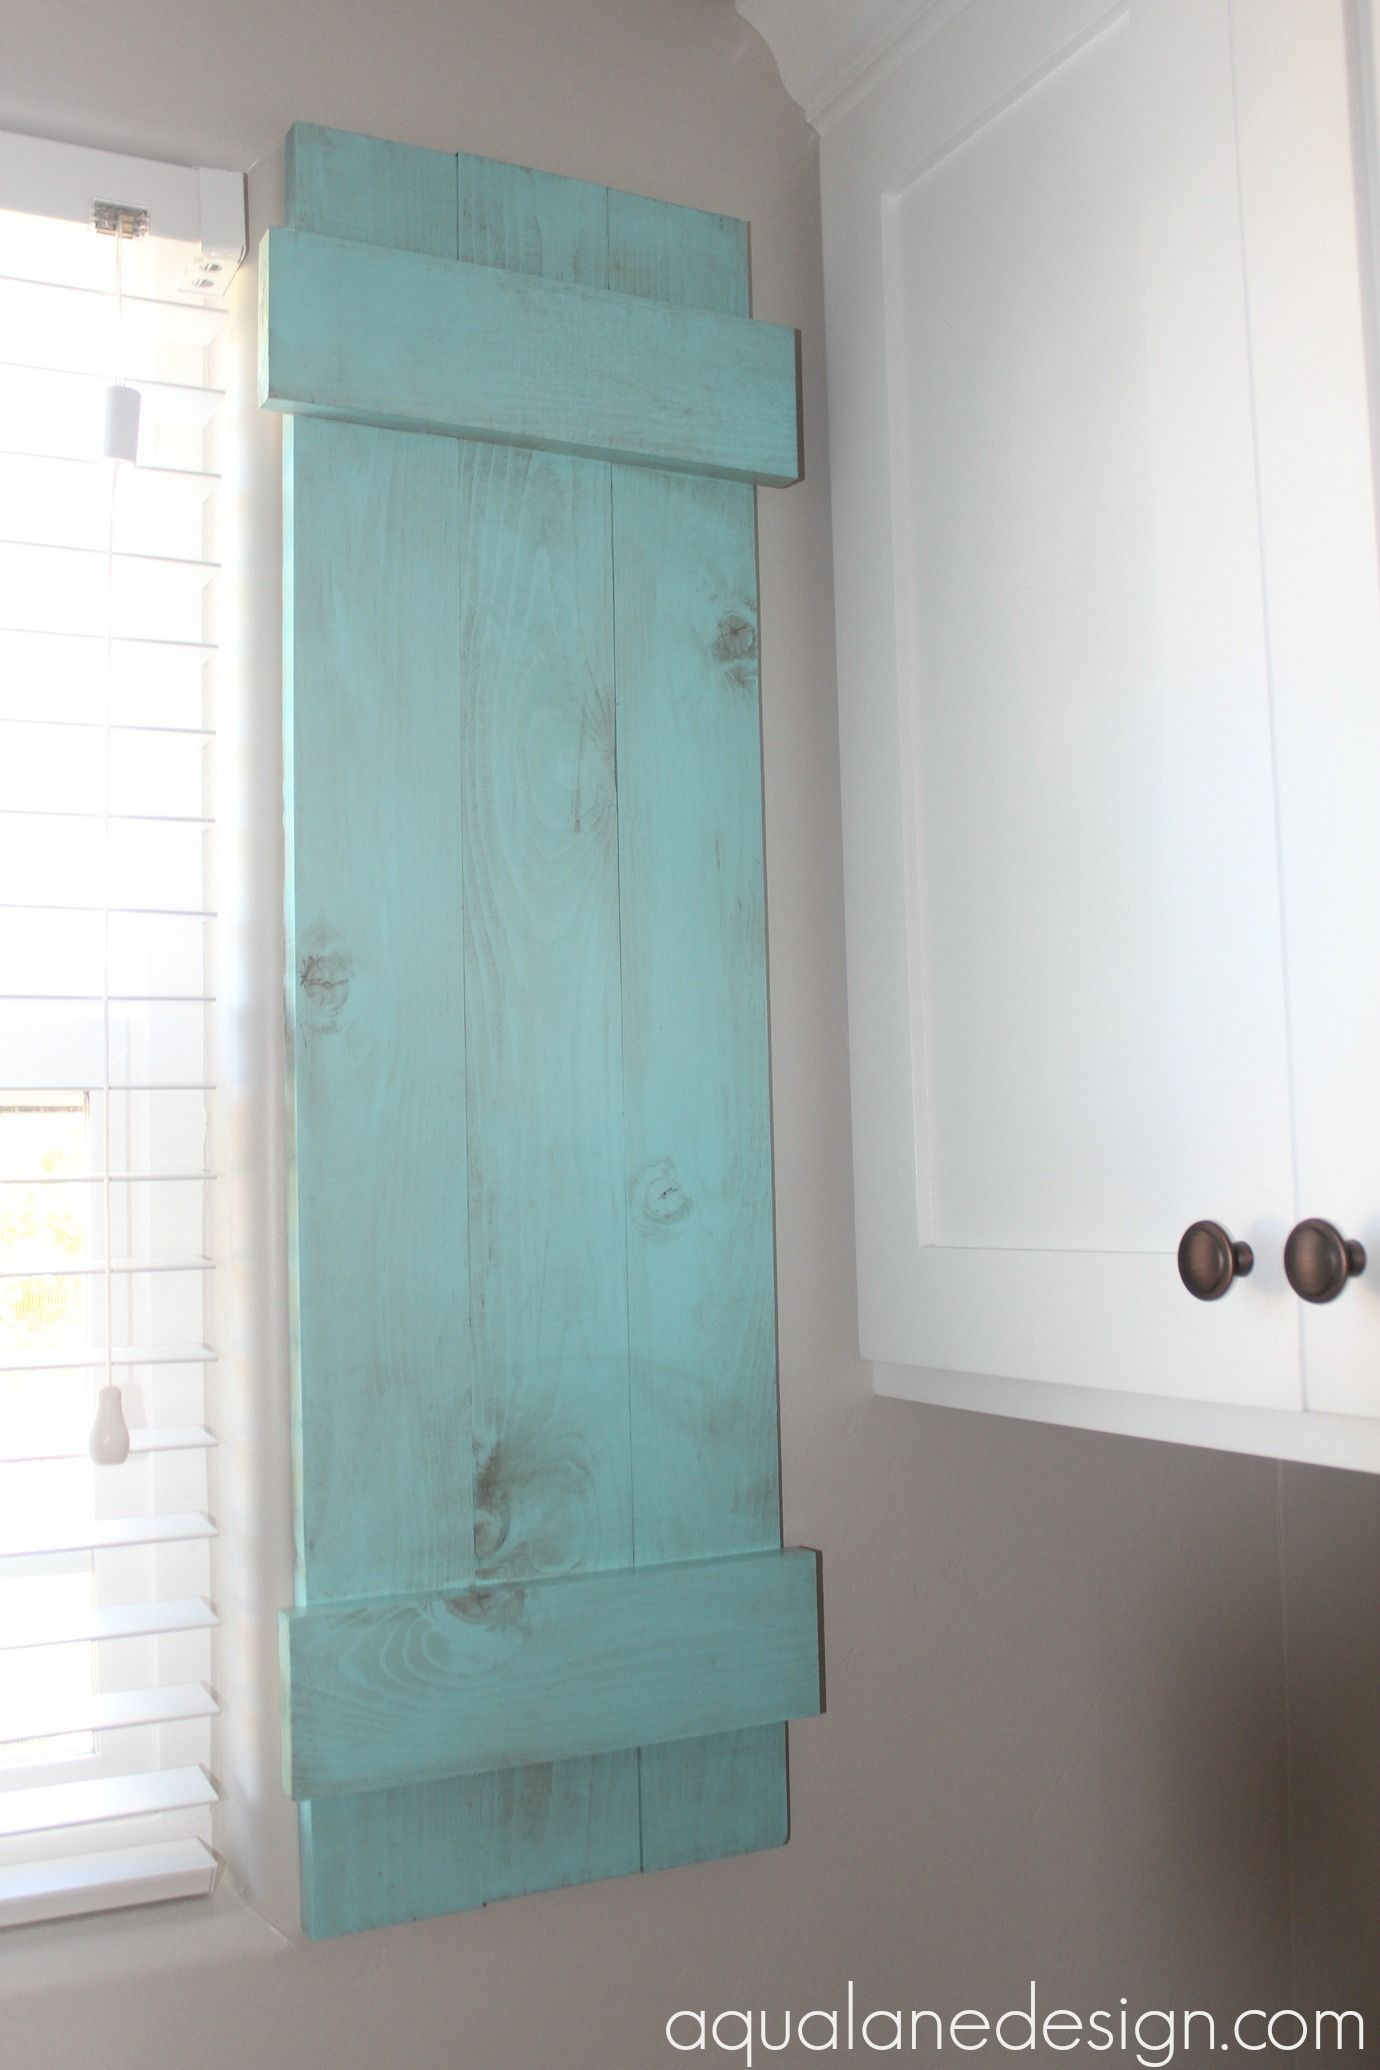 How to build indoor shutters aqua lane designs on - How to make interior window shutters ...